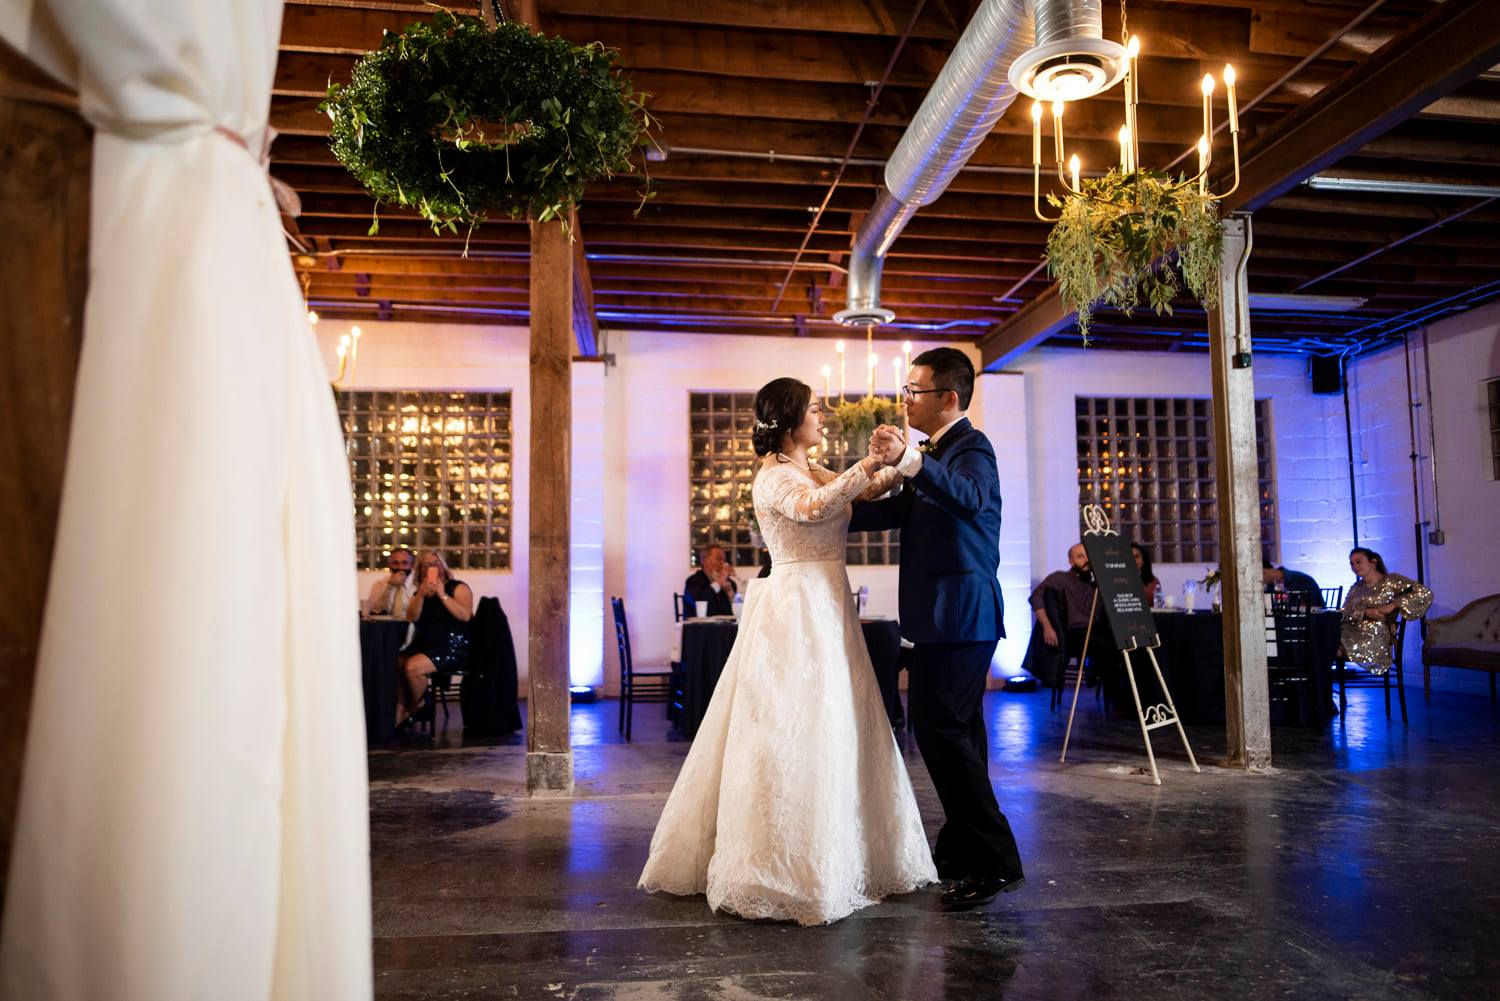 Bride and Groom Danceing with Uplighting in background